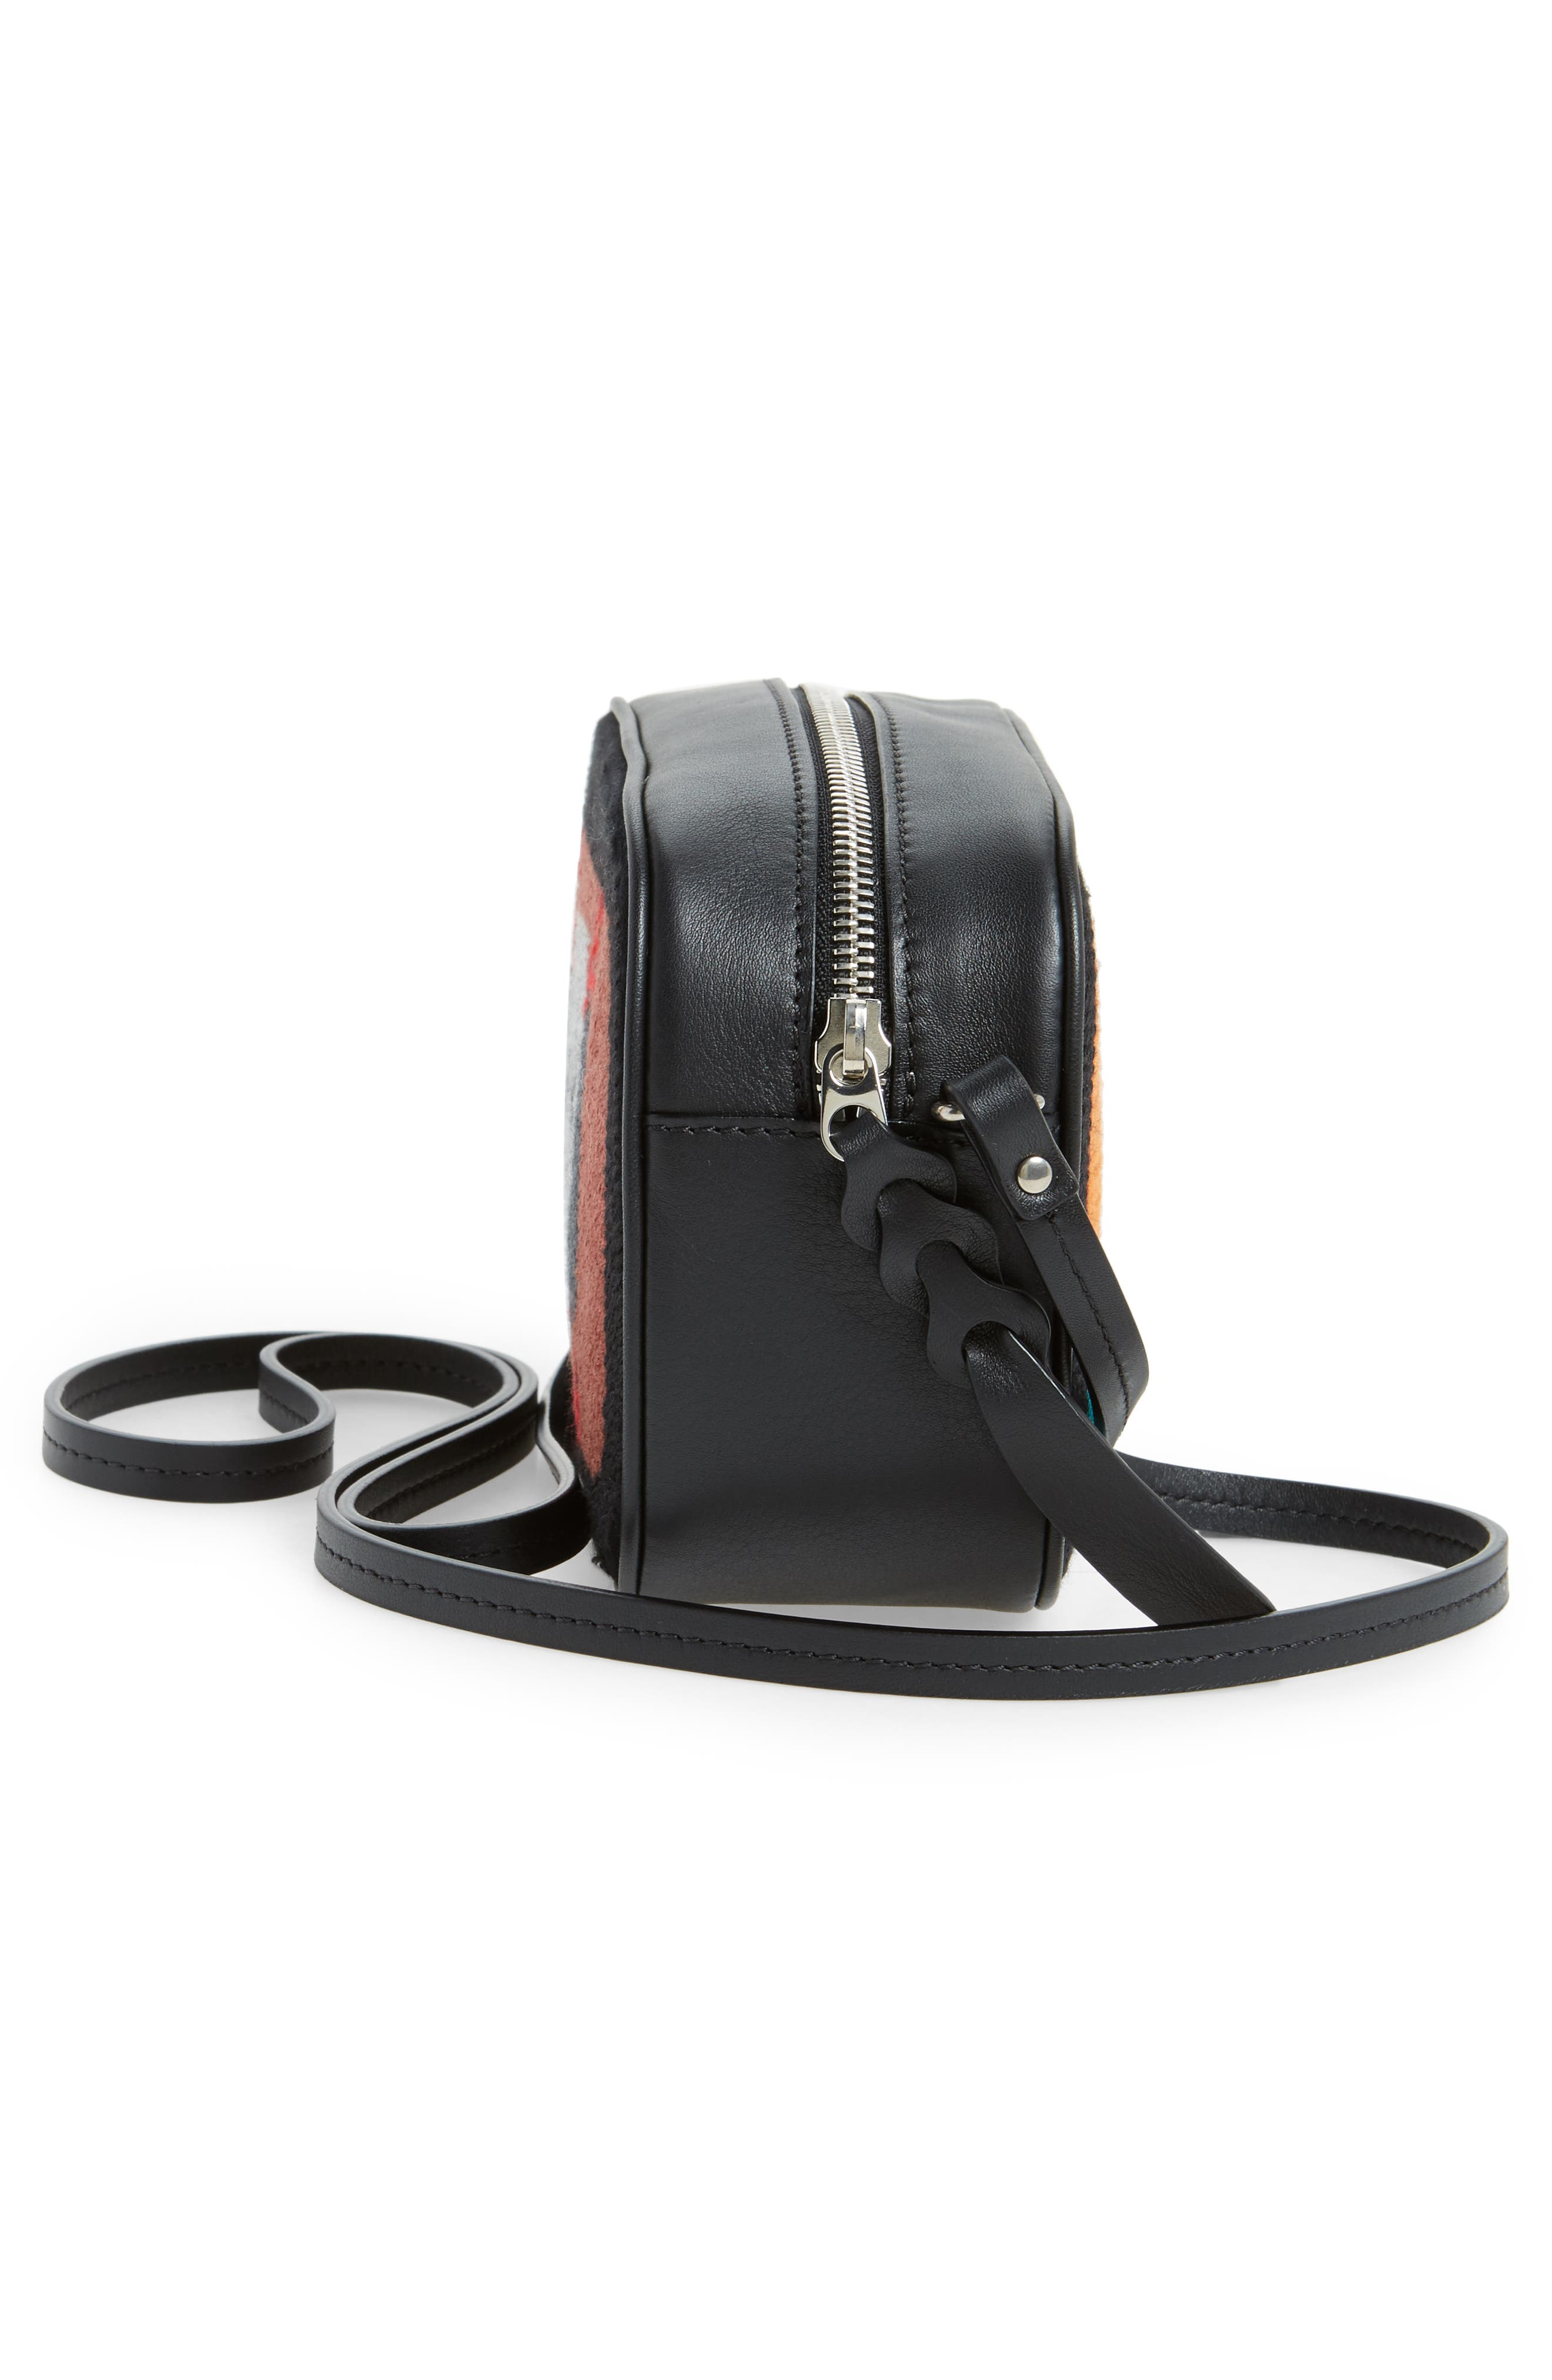 Small Embroidered Leather Camera Bag,                             Alternate thumbnail 5, color,                             998